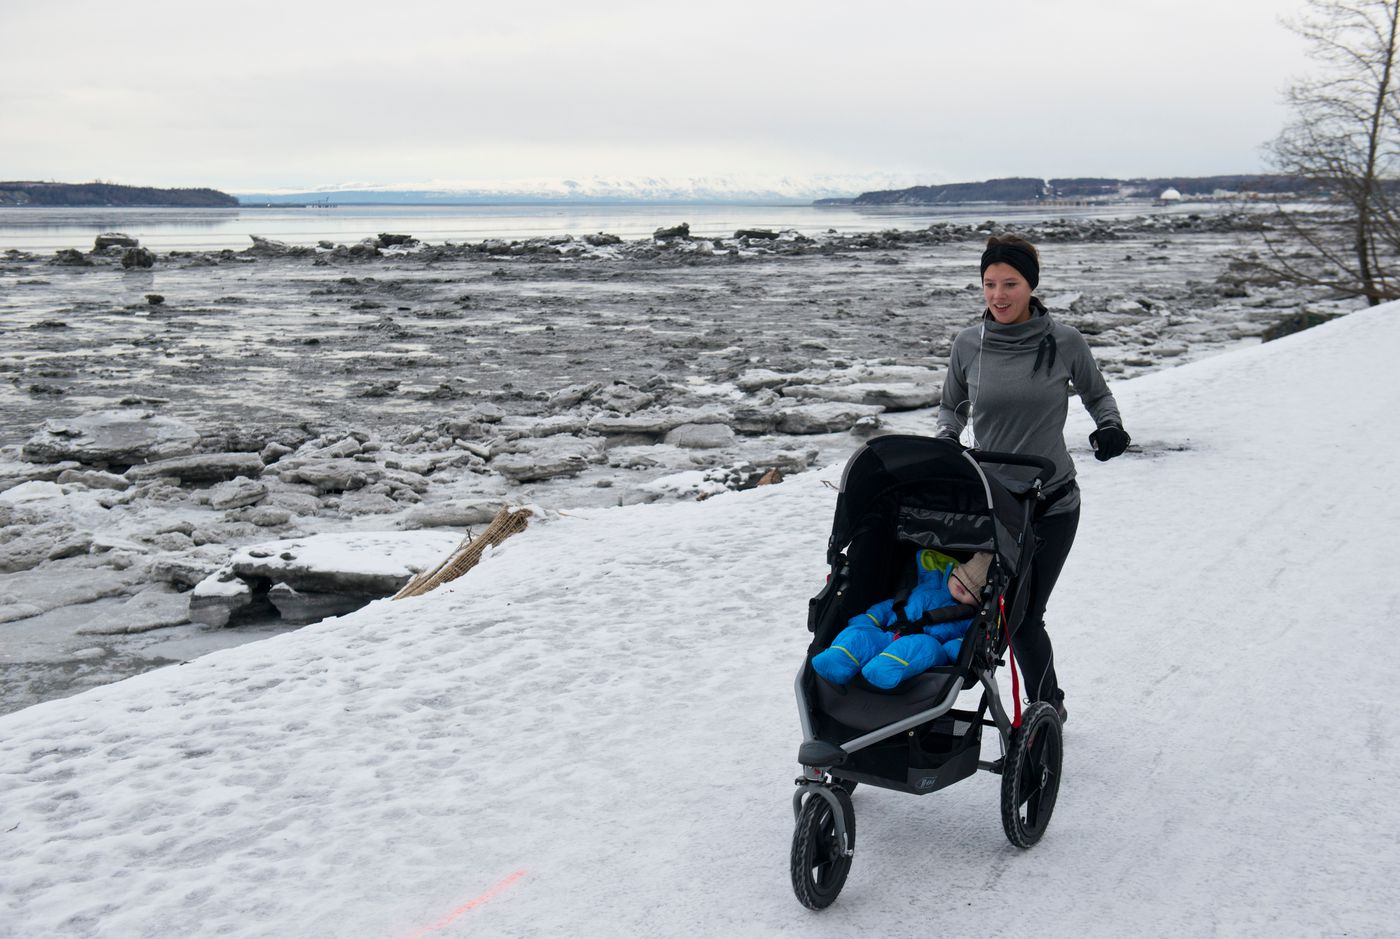 Pushing her son in front of her, Sabrina Walker runs on Anchorage's Tony Knowles Coastal Trail on Thursday, February 11, 2016.